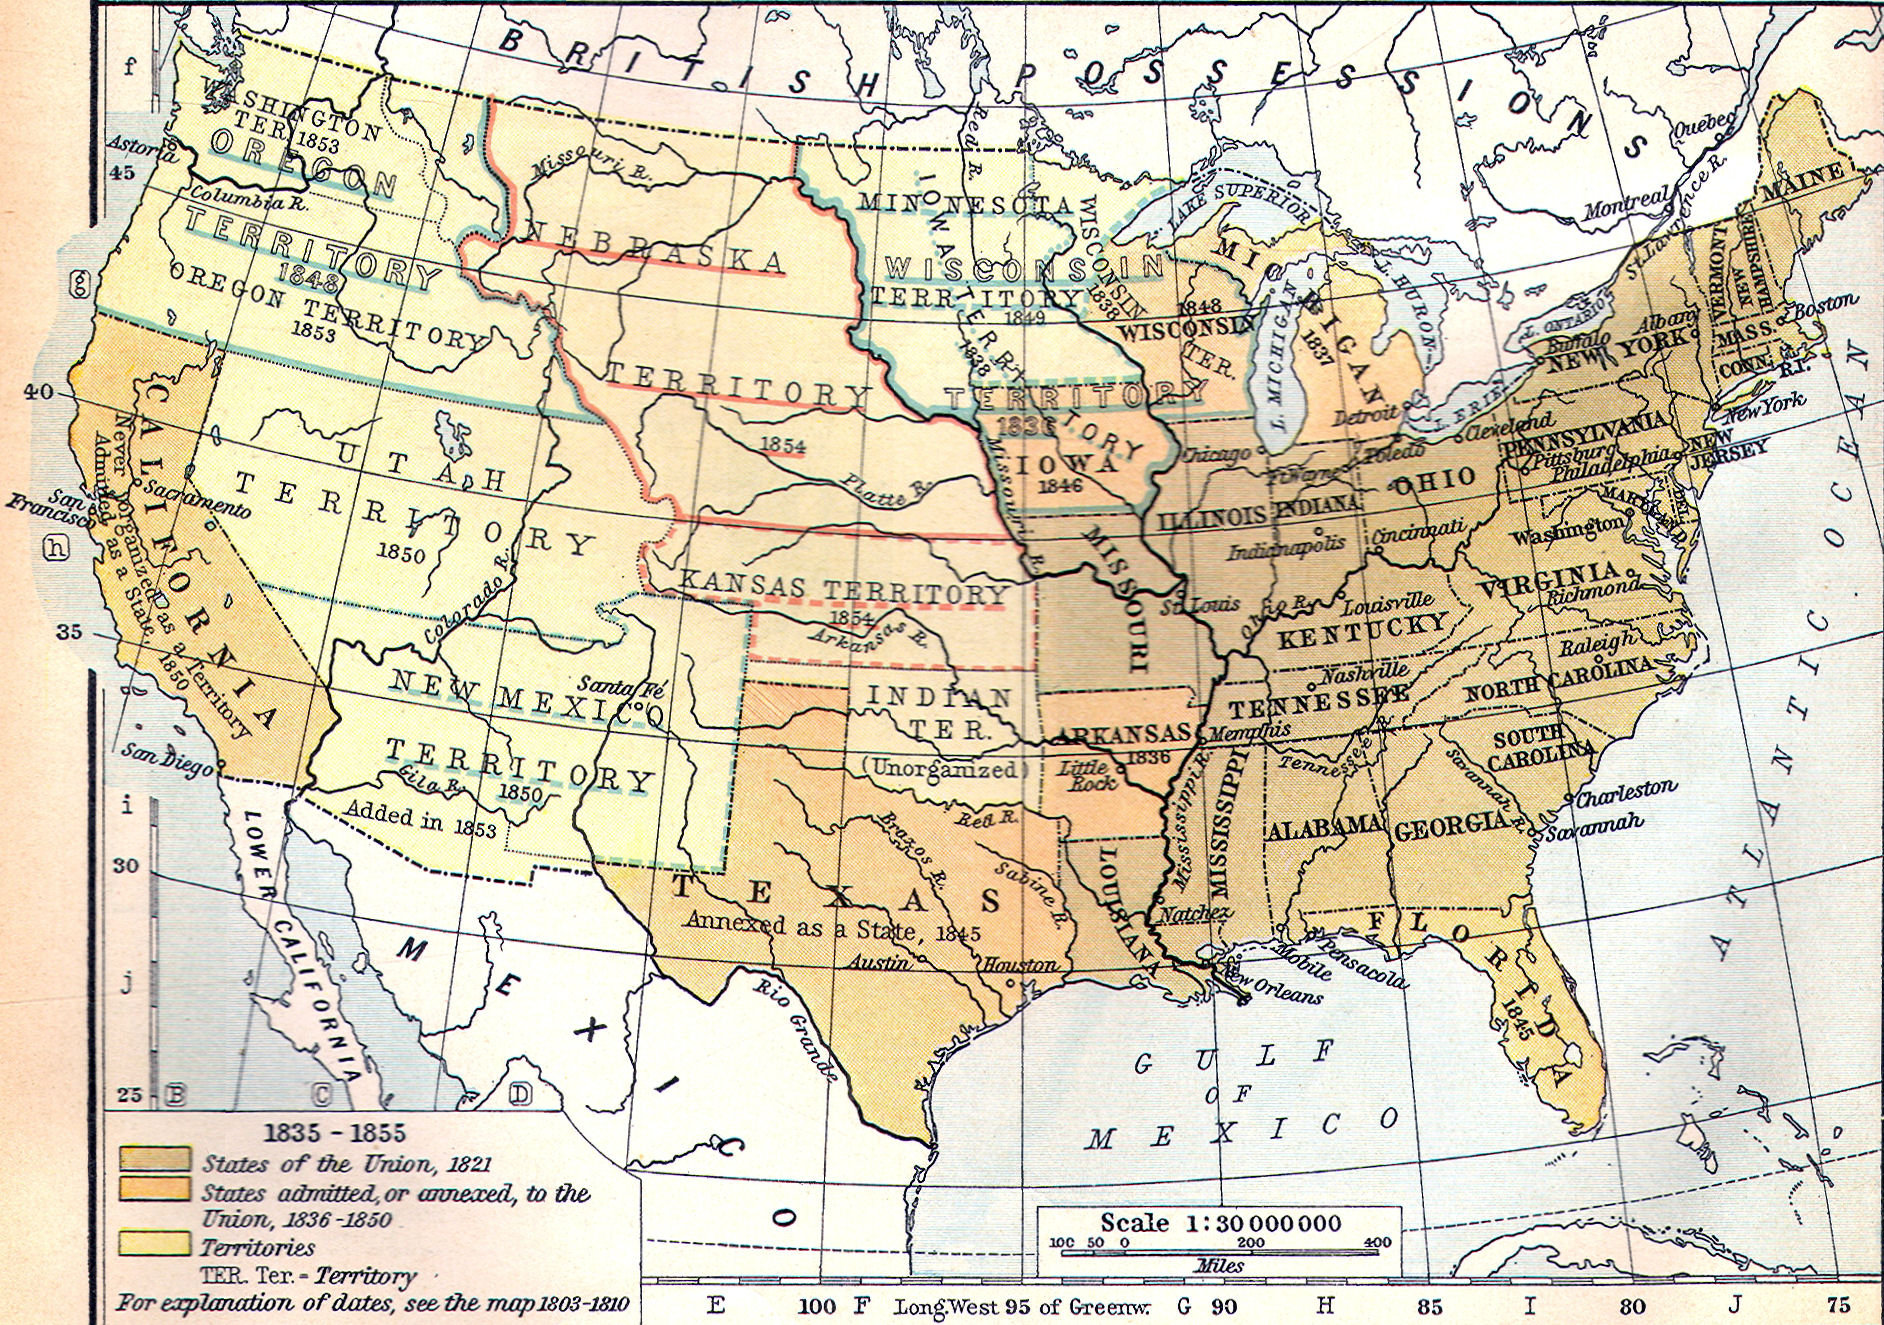 Photo Credit Http Www Heritage History Com Maps Shepherd Shep202b Jpg By 1855 The United States Had Streached From Coast To Coast But All The Territory